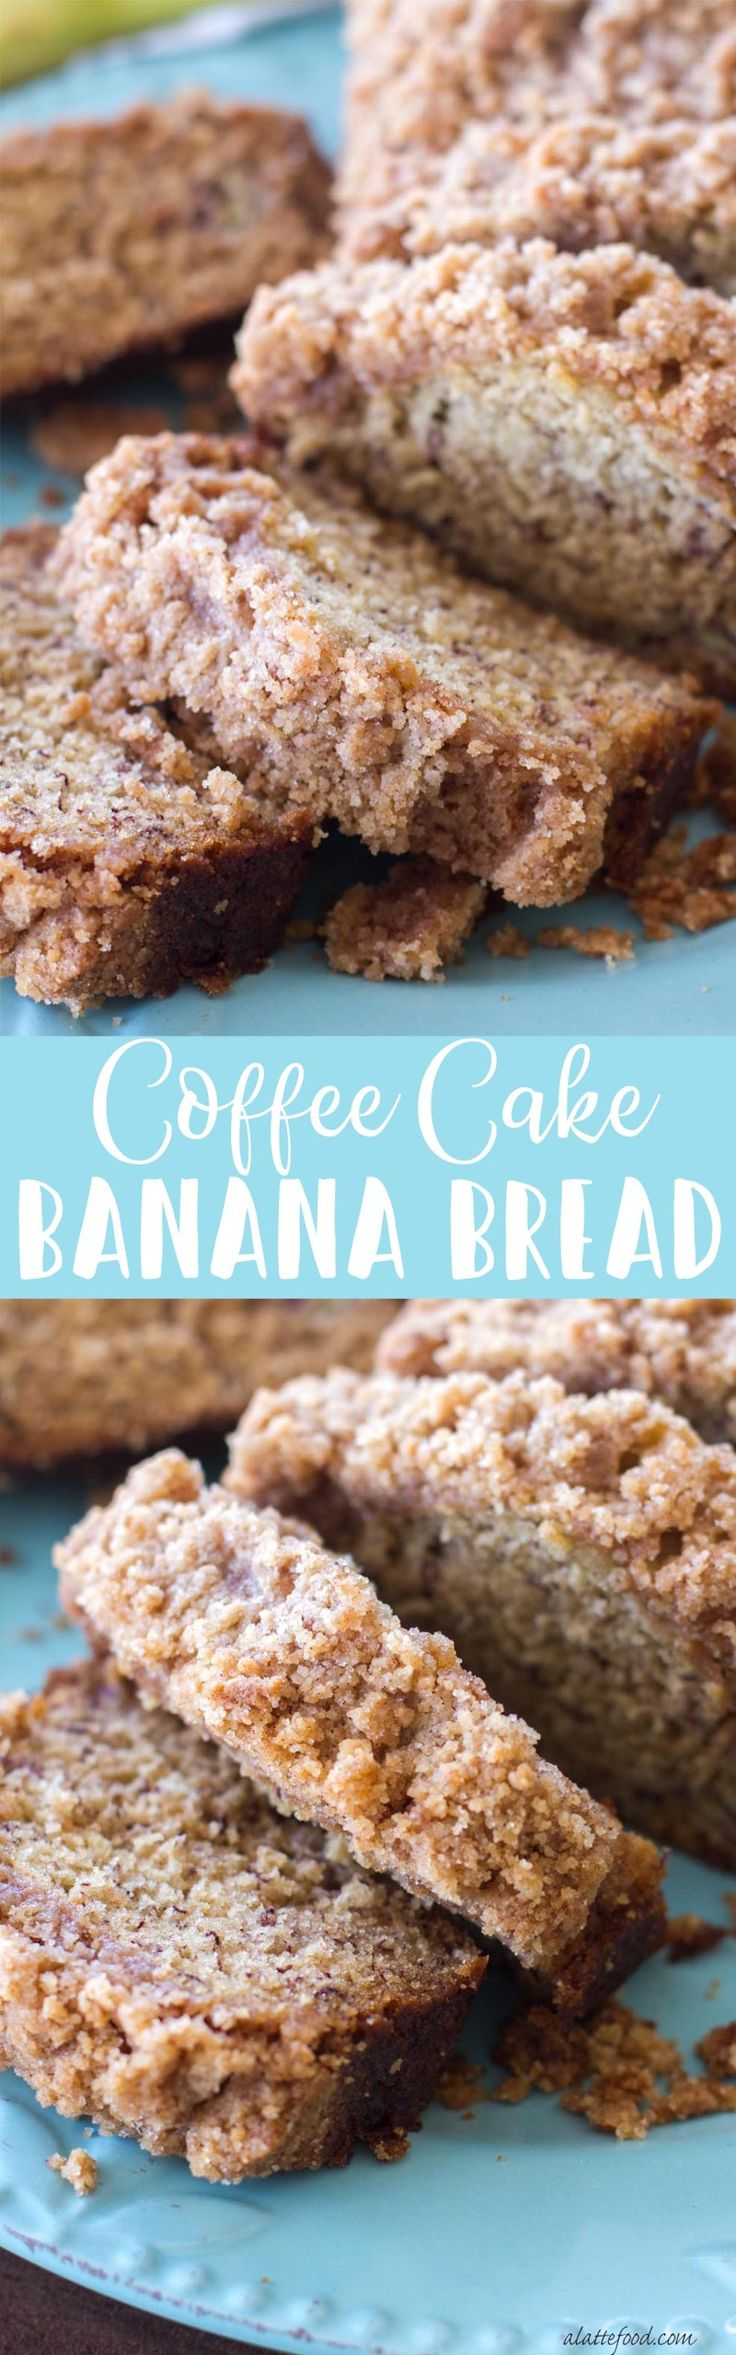 This classic banana bread recipe is topped with a sweet crumb topping making it a cross between a quick bread and coffee cake! (Bread Recipes)